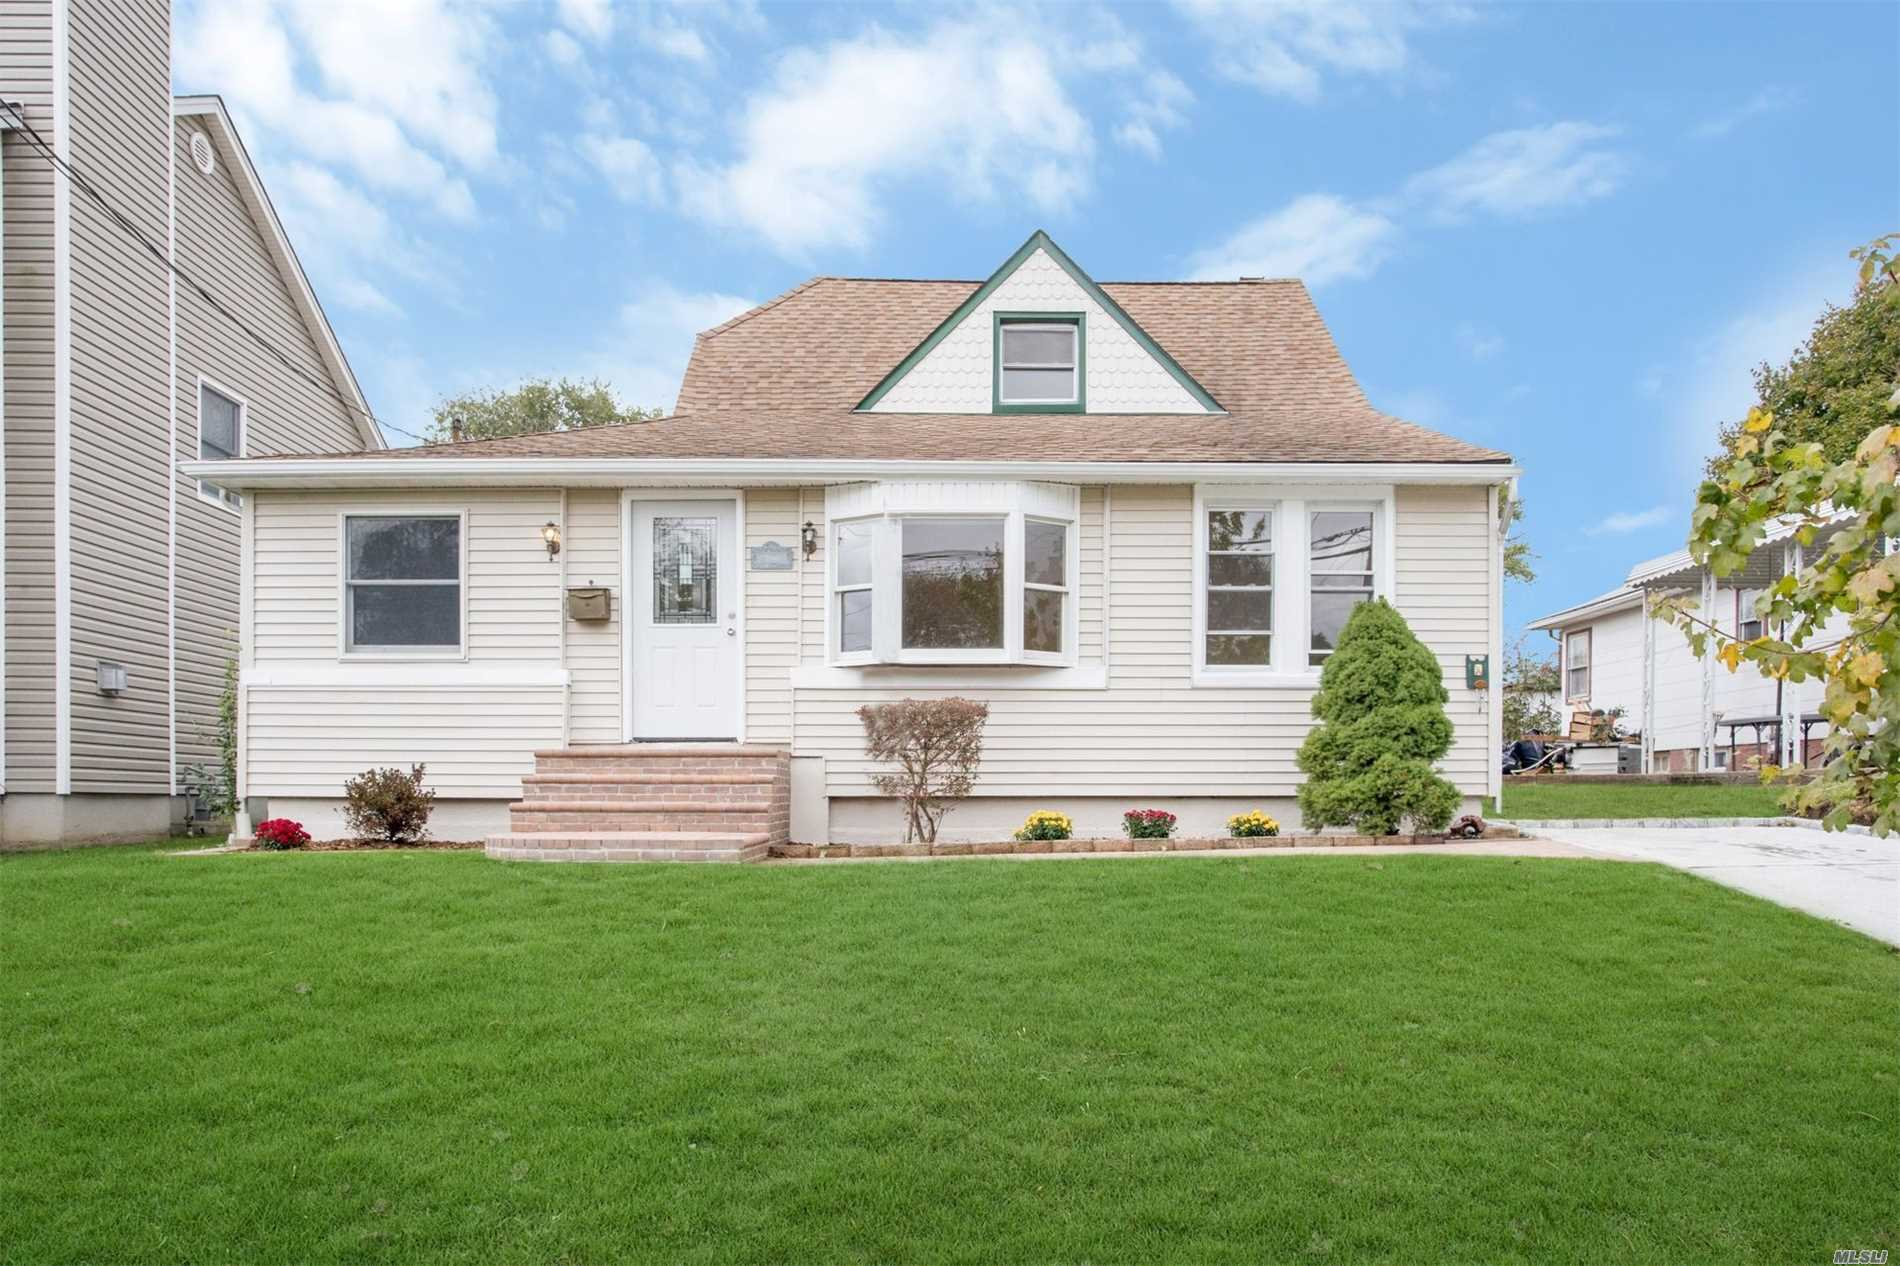 Light Bright Newly Renovated 4 Bedroom, Den/Family Rm, 2 High End Baths, Open Floor Plan.Wow CookS Kitchen With Extra Storage, Stainless Steel Appliances, Granite Counter , W/B Fireplace Lr/Dr Combo. Hardwood Floors Throughout.On Quite Street Mid Block .Close To Transportation, School, Entertainment &More Must See!